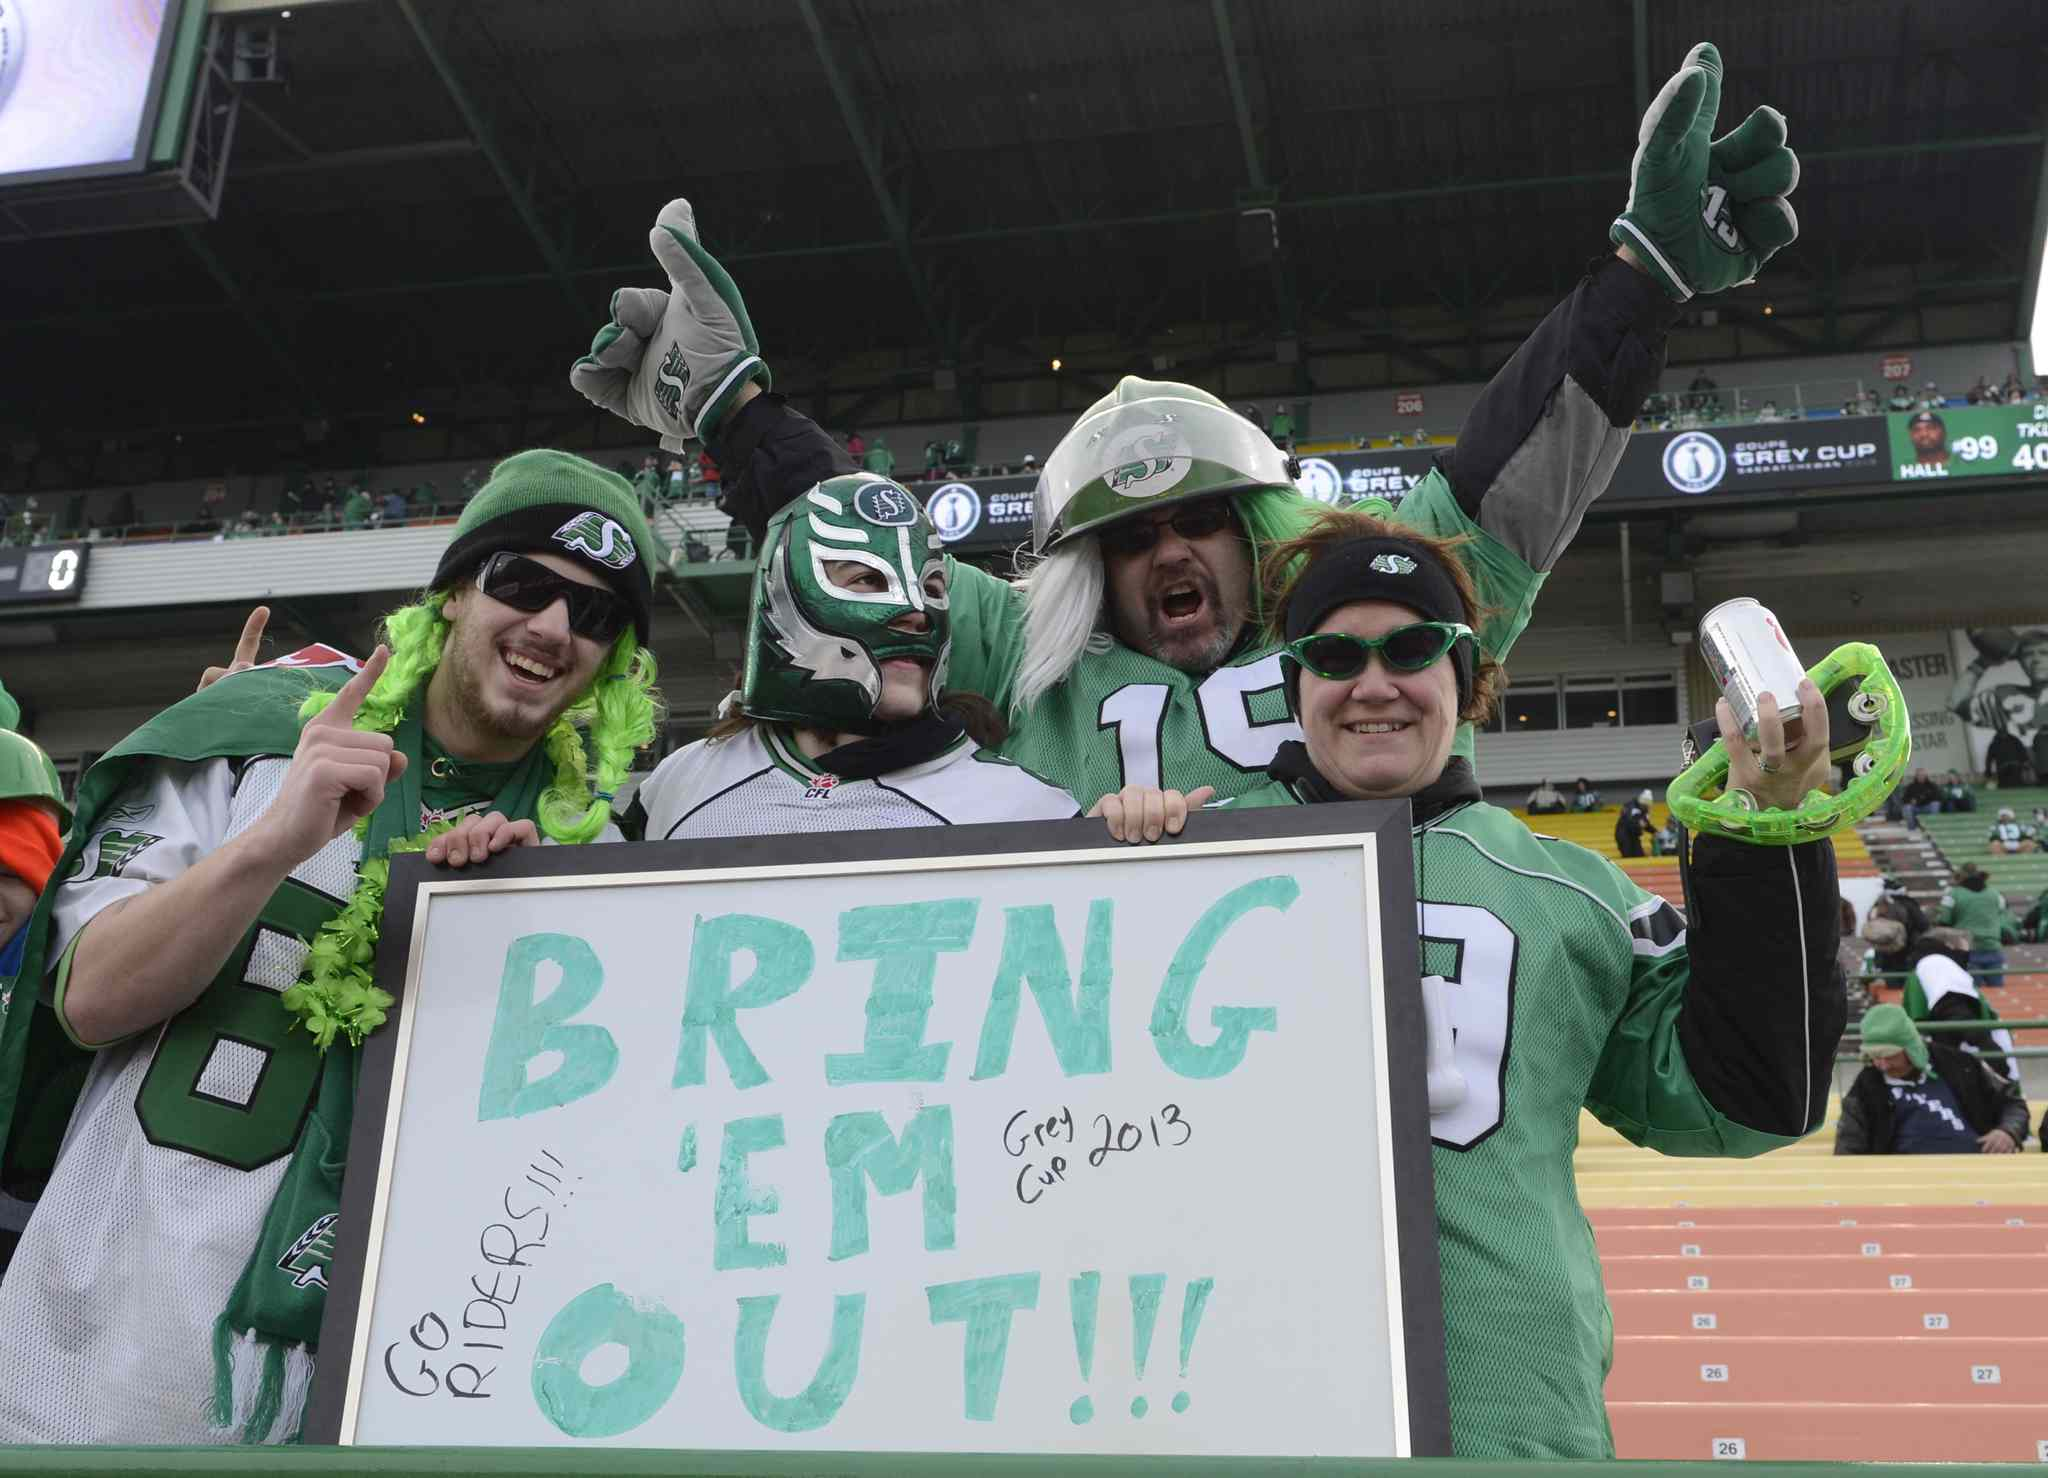 Saskatchewan Roughriders fans ham it up at the Grey Cup Saturday November 24, 2013 in Regina.